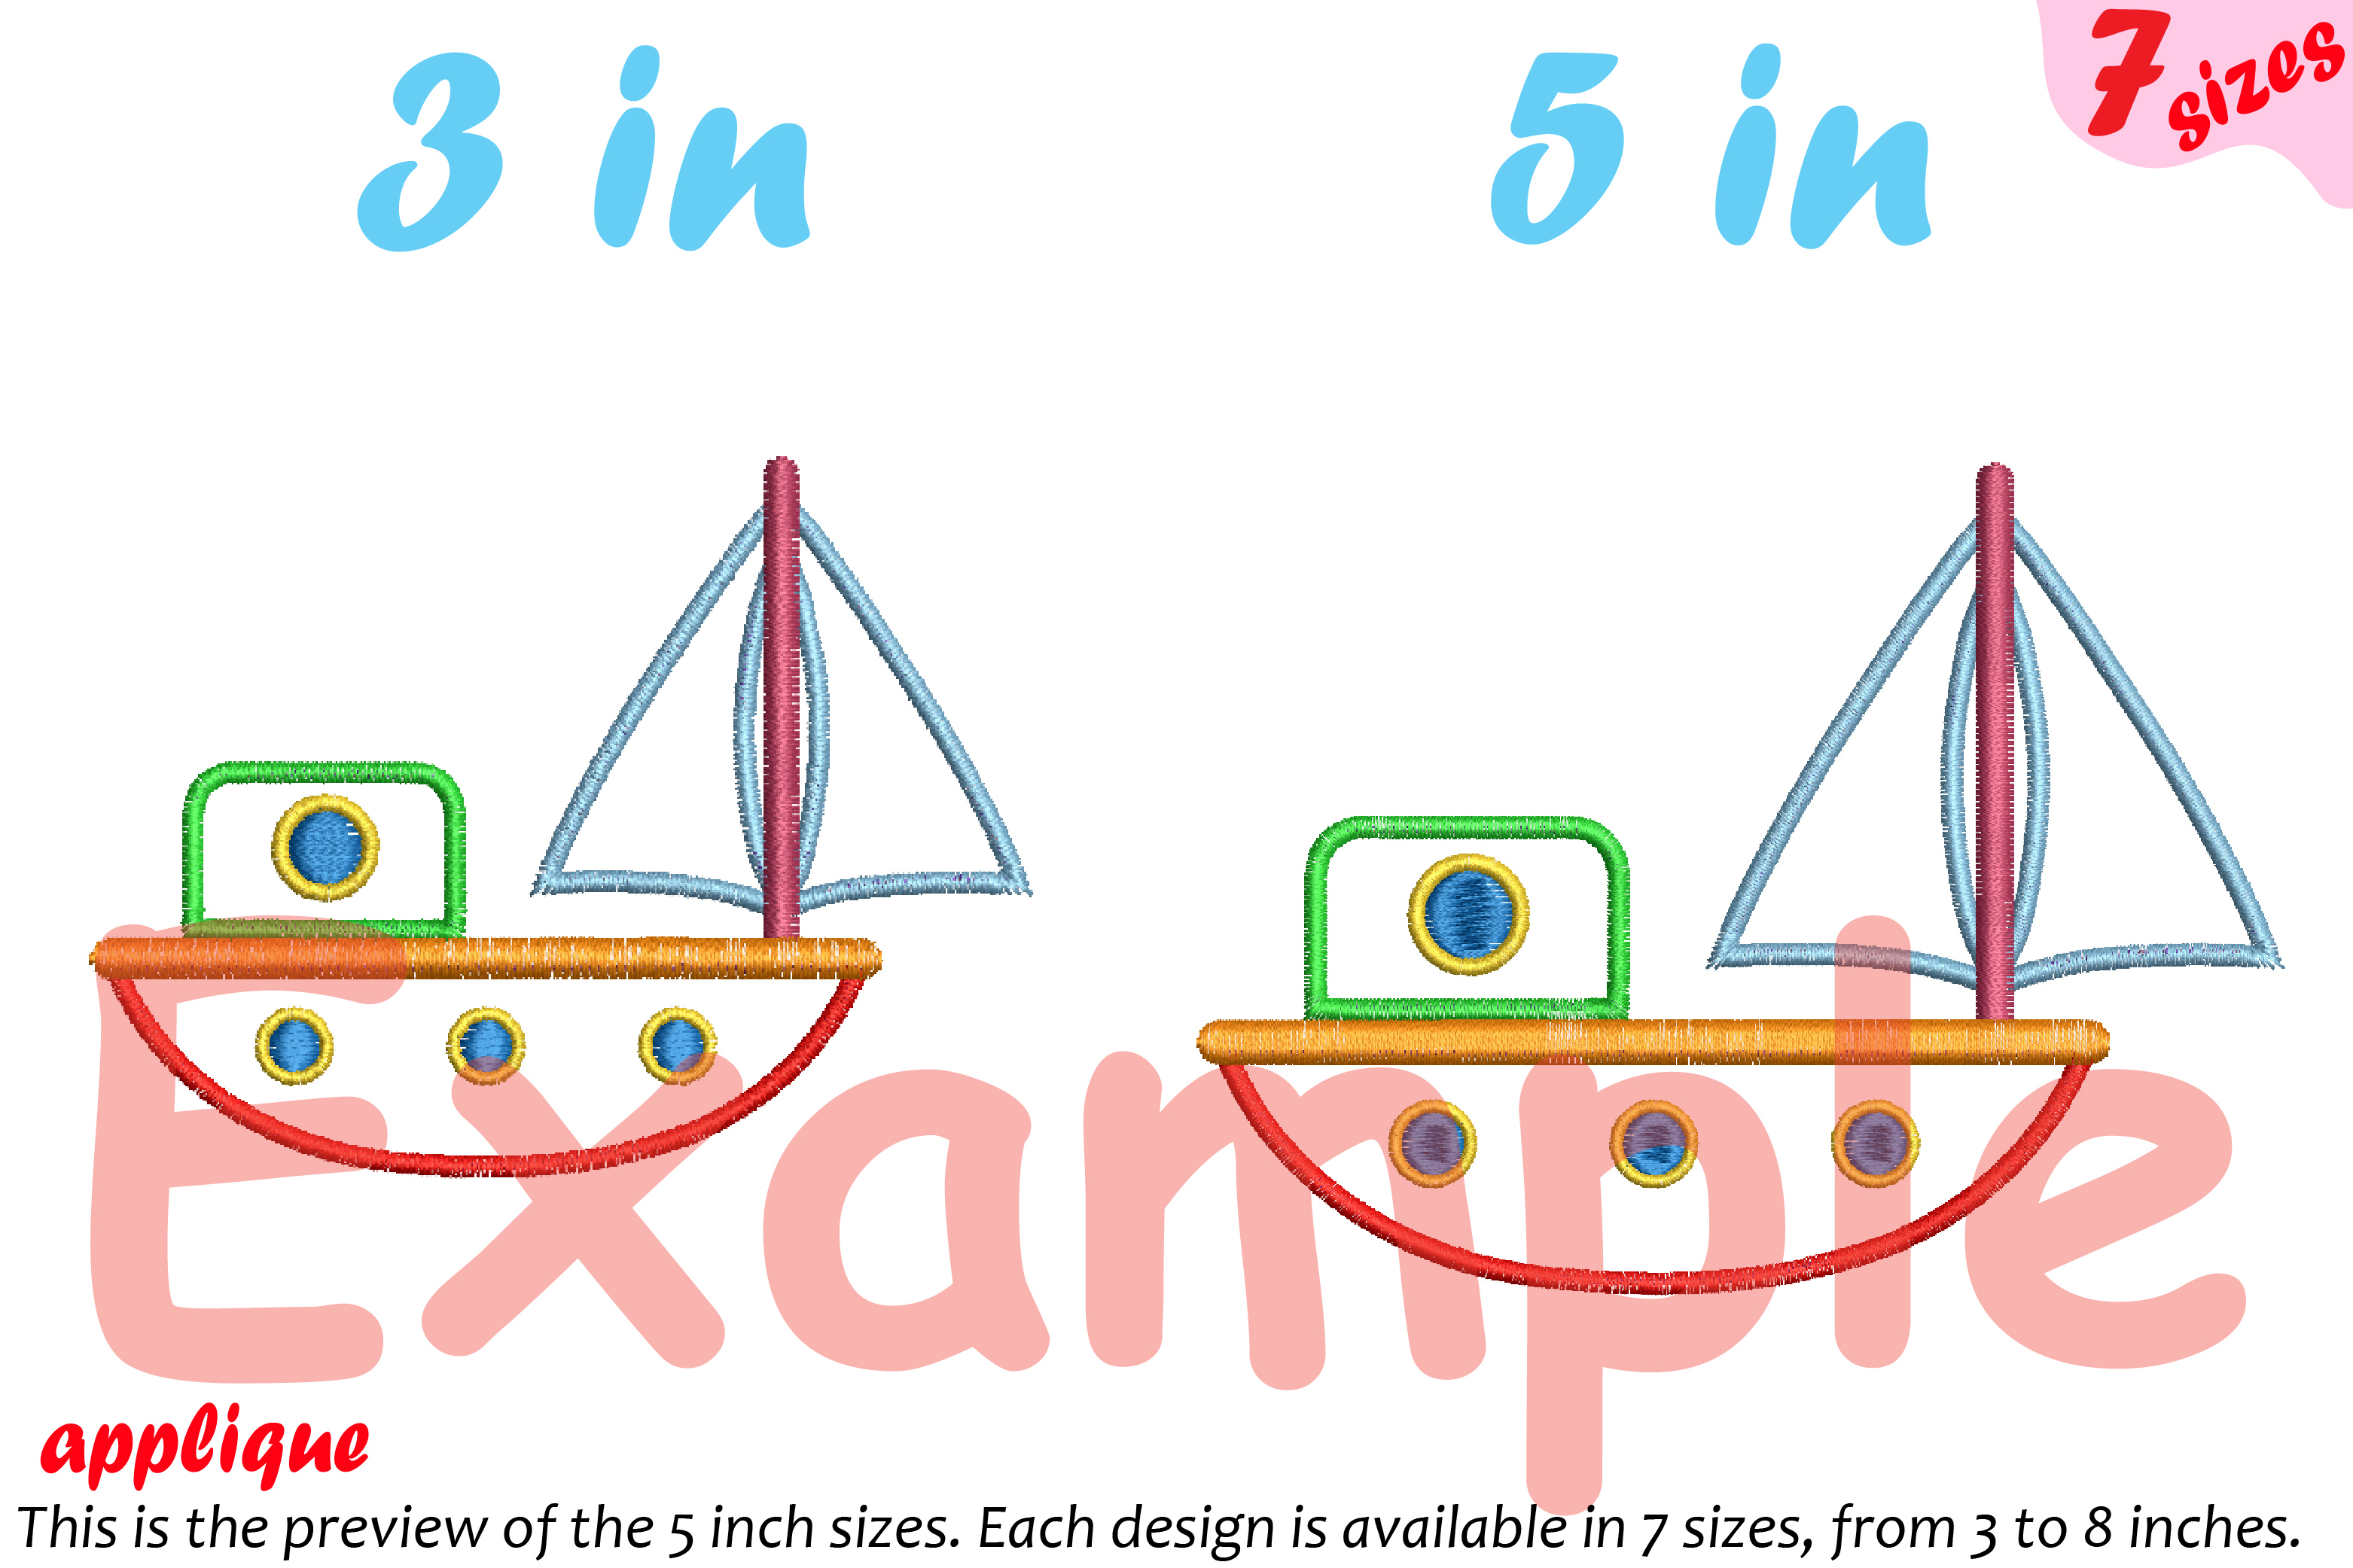 Sailboat Toy Applique Designs for Embroidery Machine Instant Download Commercial Use symbol outline cartoon boat toys yacht ship 19a example image 3